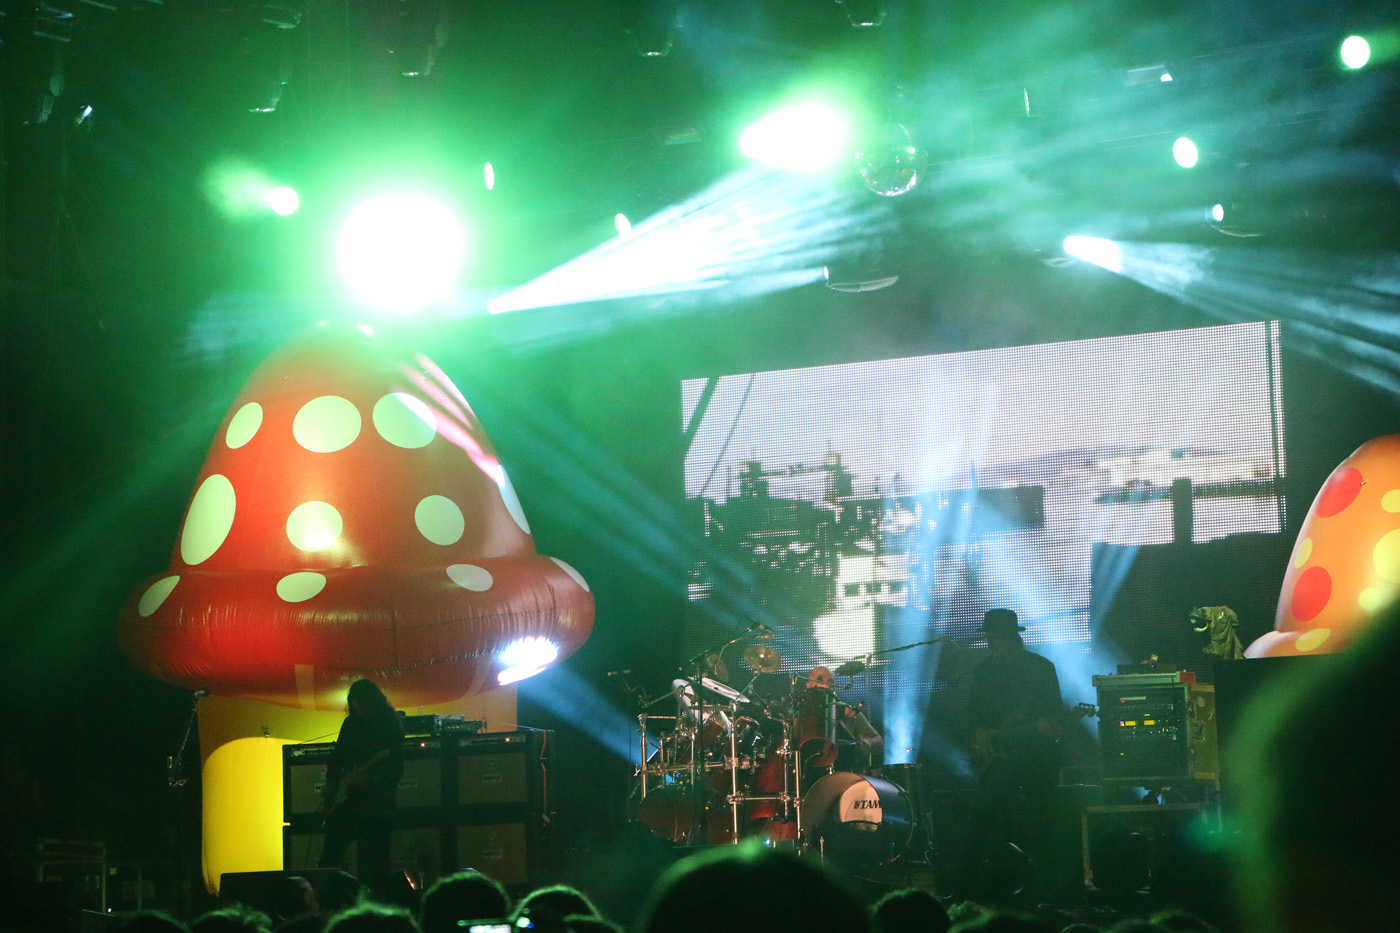 Larry LaLonde, left, Tim Alexander, center, and Les Claypool, right, of Primus perform at the Sloss Music & Arts Festival in Birmingham, Ala., on Sunday, July 19, 2015. (MTSU Sidelines / John Connor Coulston)